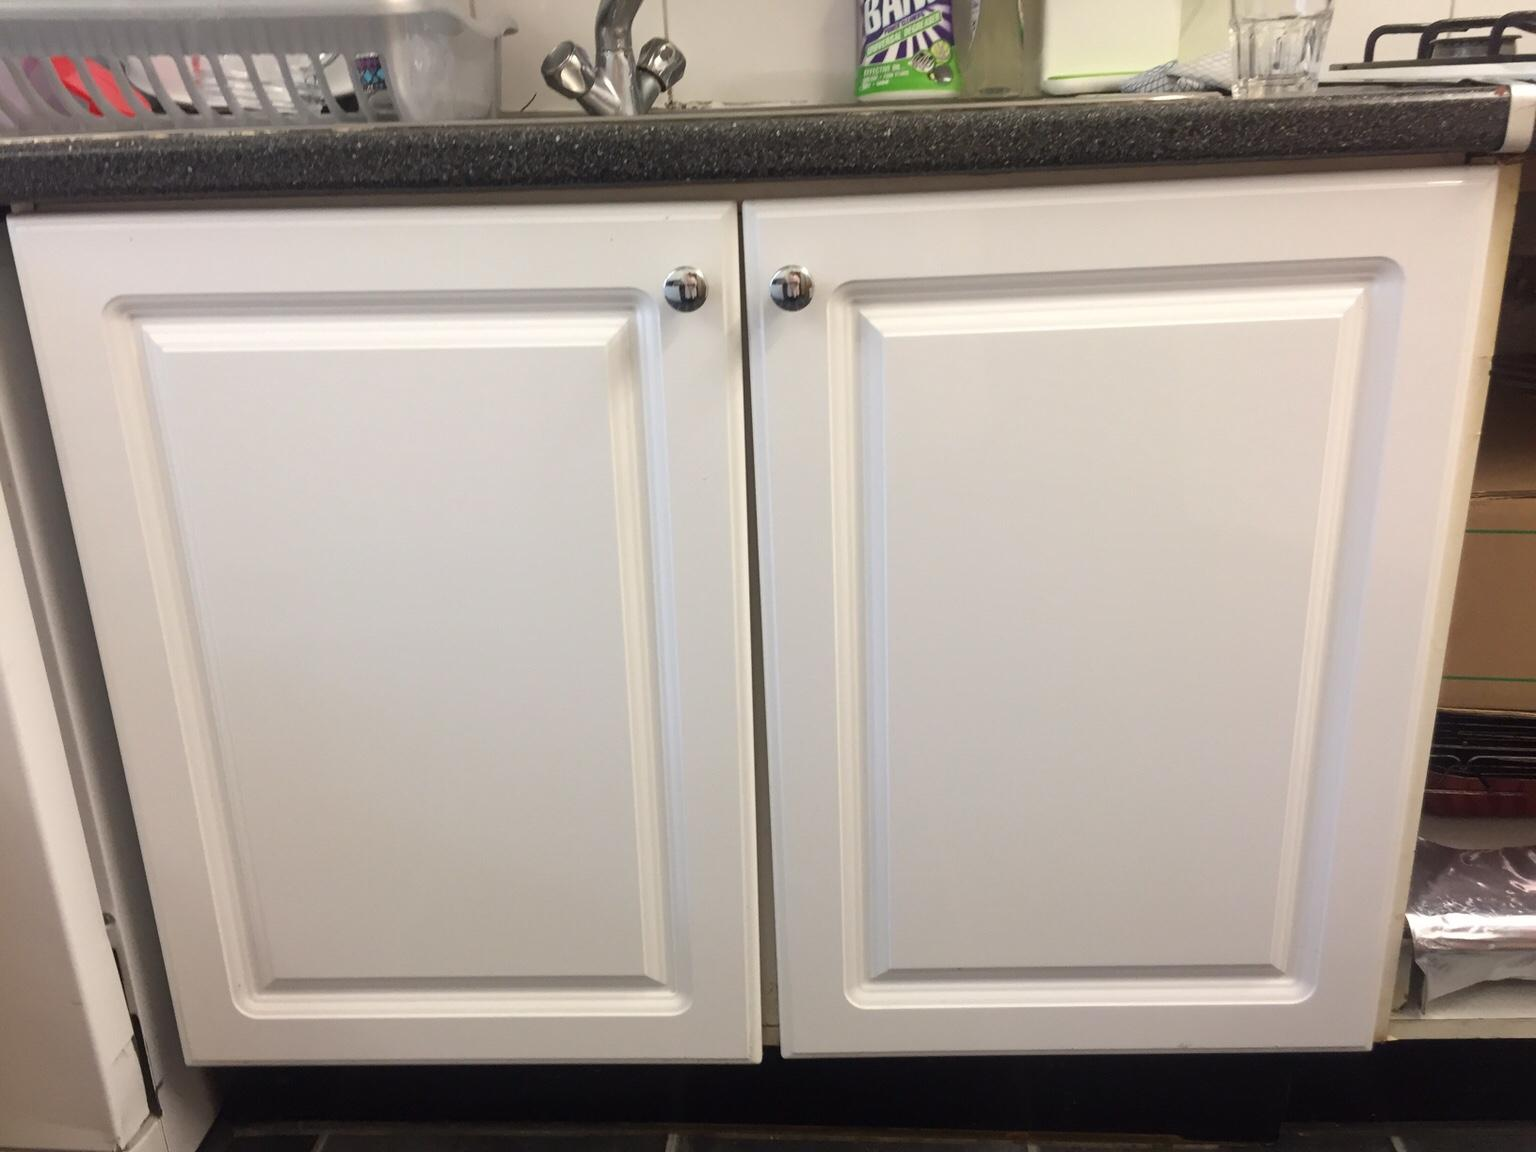 Used White Gloss Kitchen Cabinets Doors In W3 Ealing For 65 00 For Sale Shpock